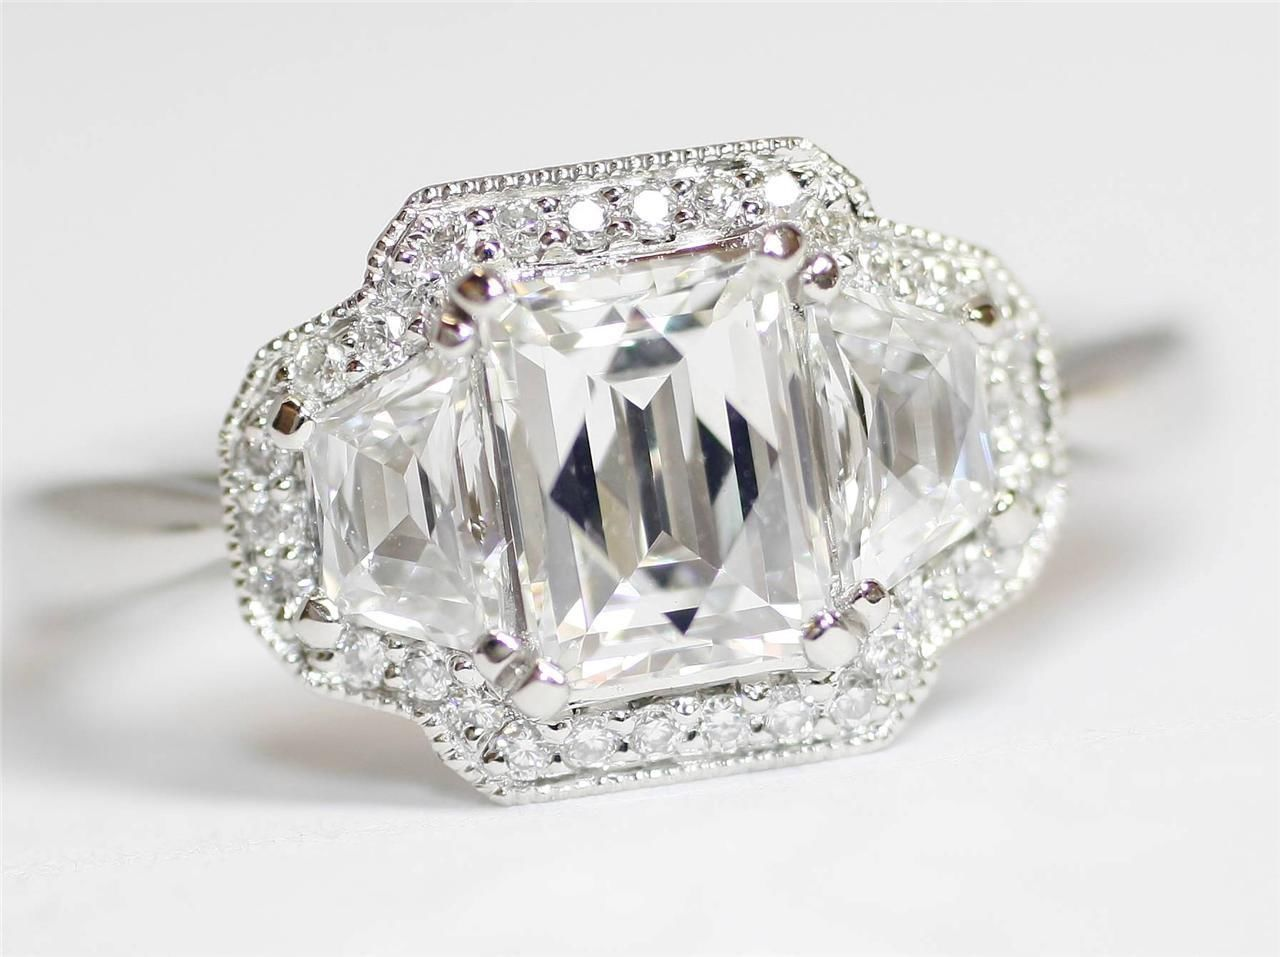 Sell a Tycoon Diamond Ring - Denver. CO